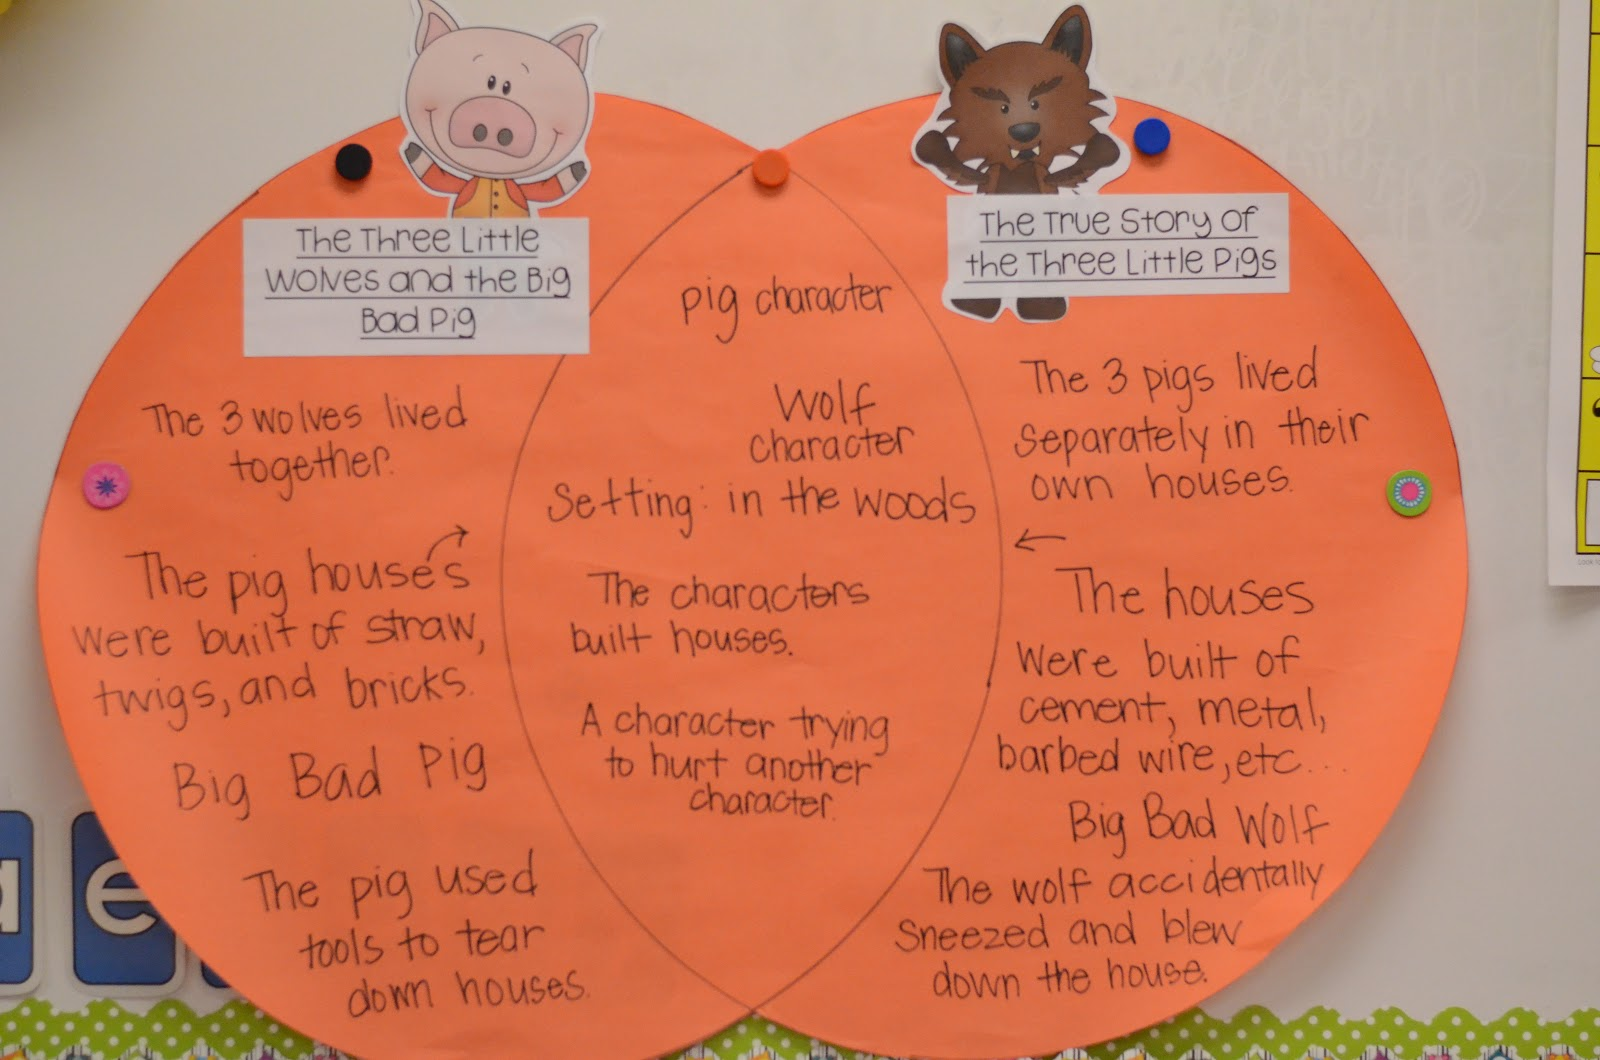 Comparing And Contrasting With The Three Little Pigs